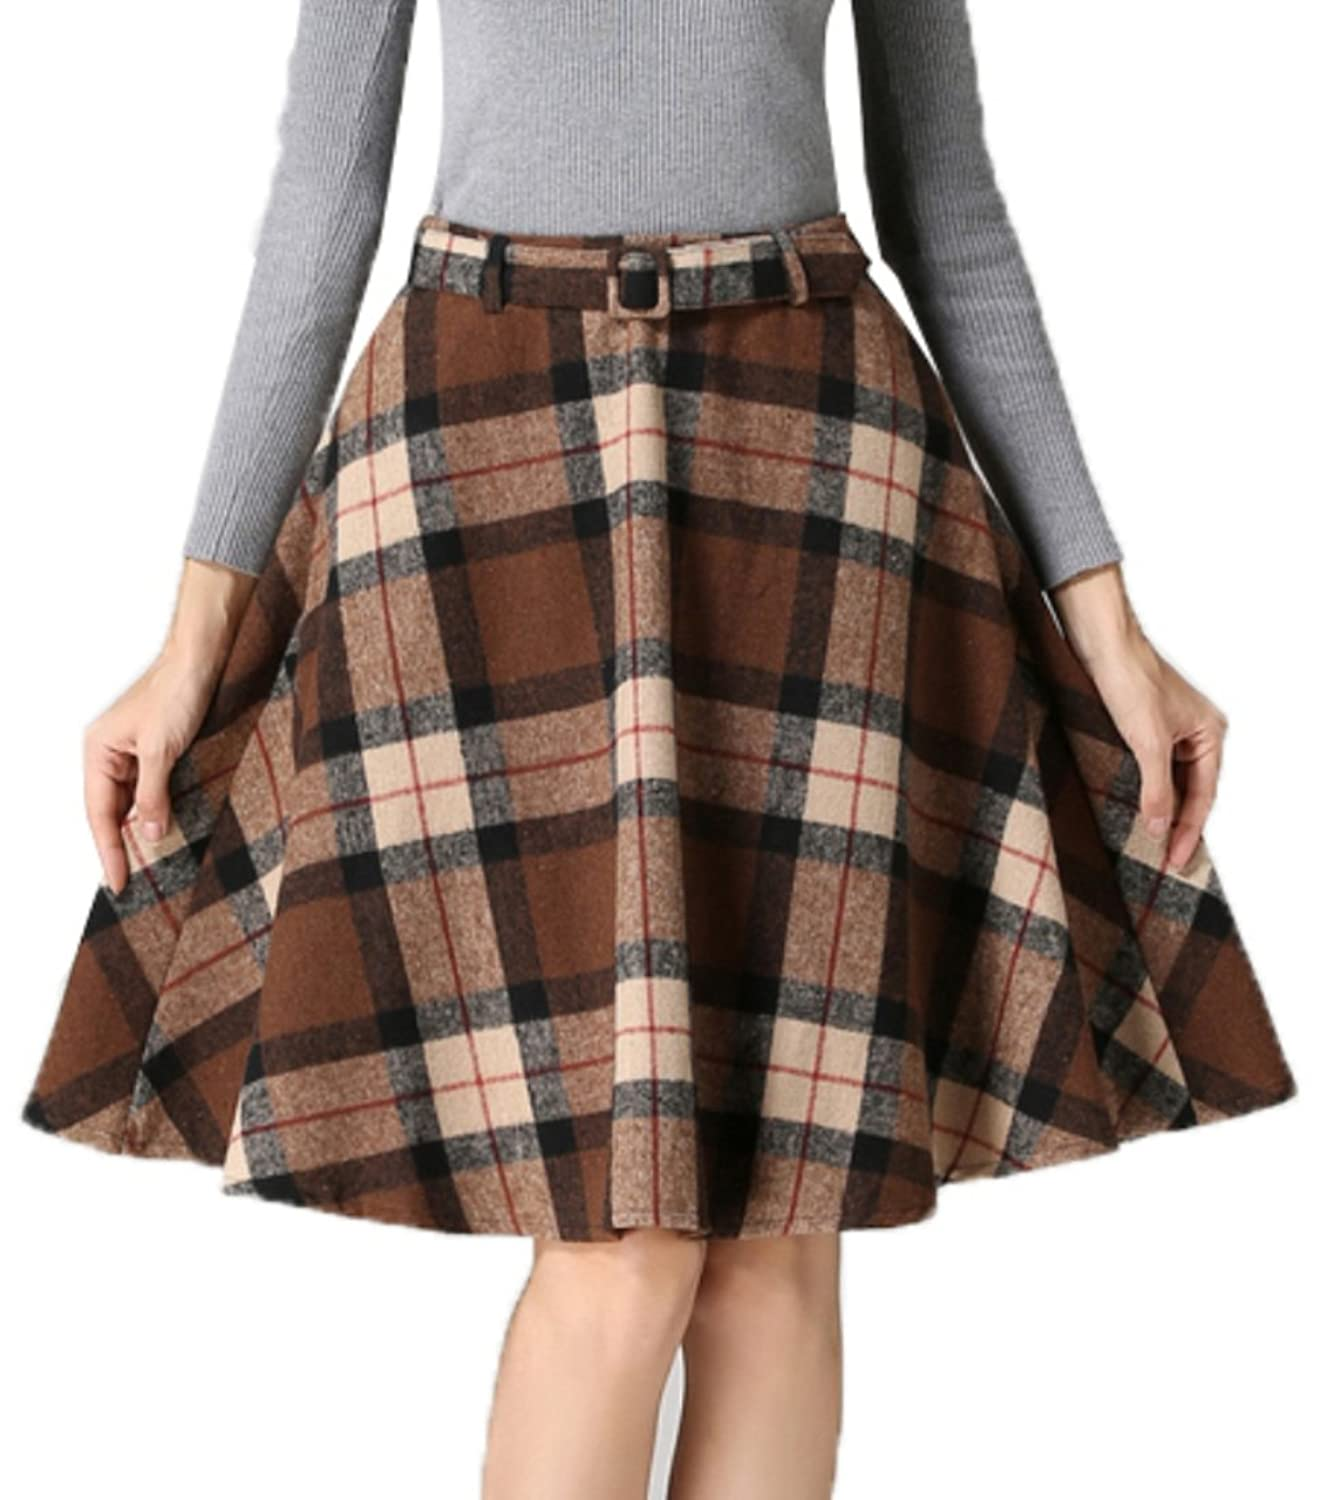 60s Costumes: Hippie, Go Go Dancer, Flower Child Sankill Womens High Waisted Wool Check Print Plaid Aline Skirt $21.99 AT vintagedancer.com